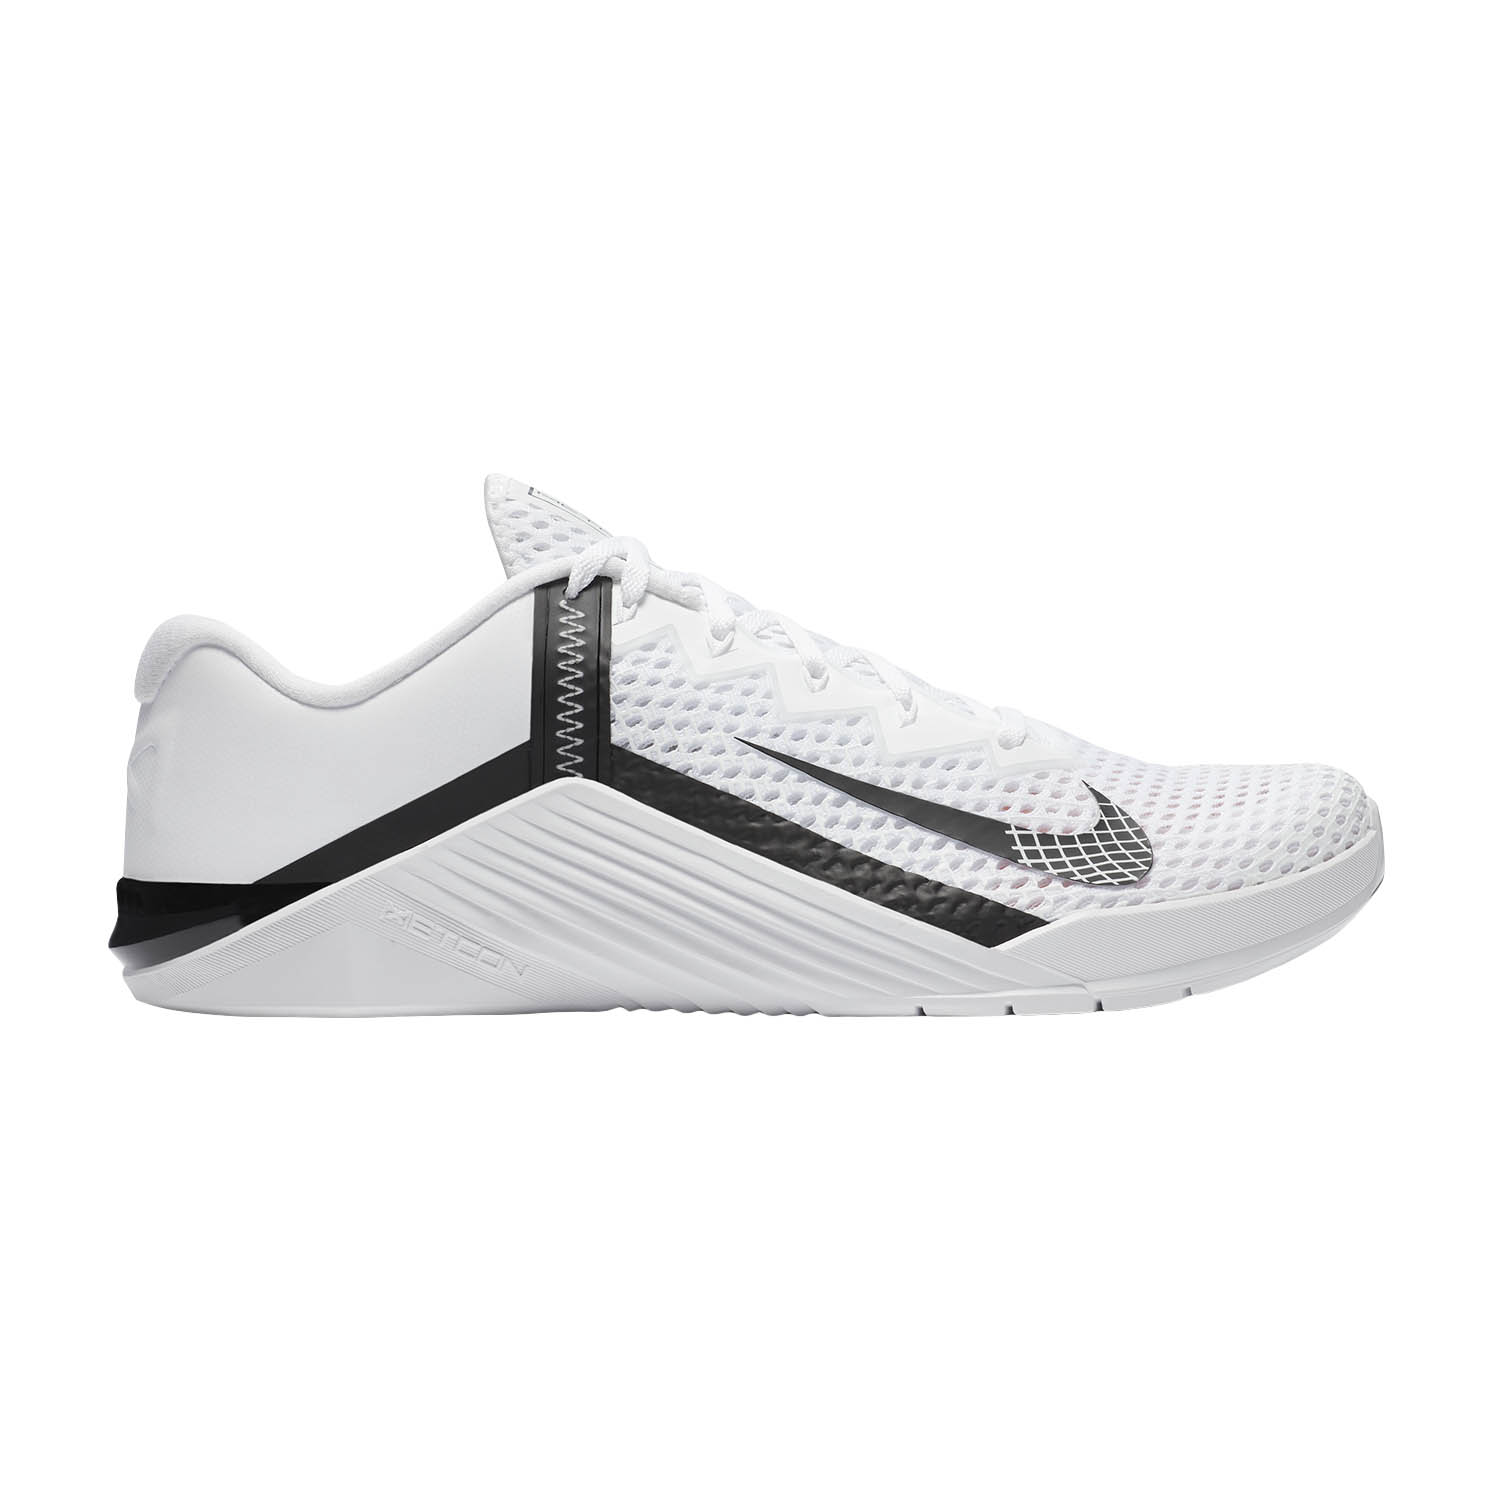 Nike Metcon 6 - White/Black